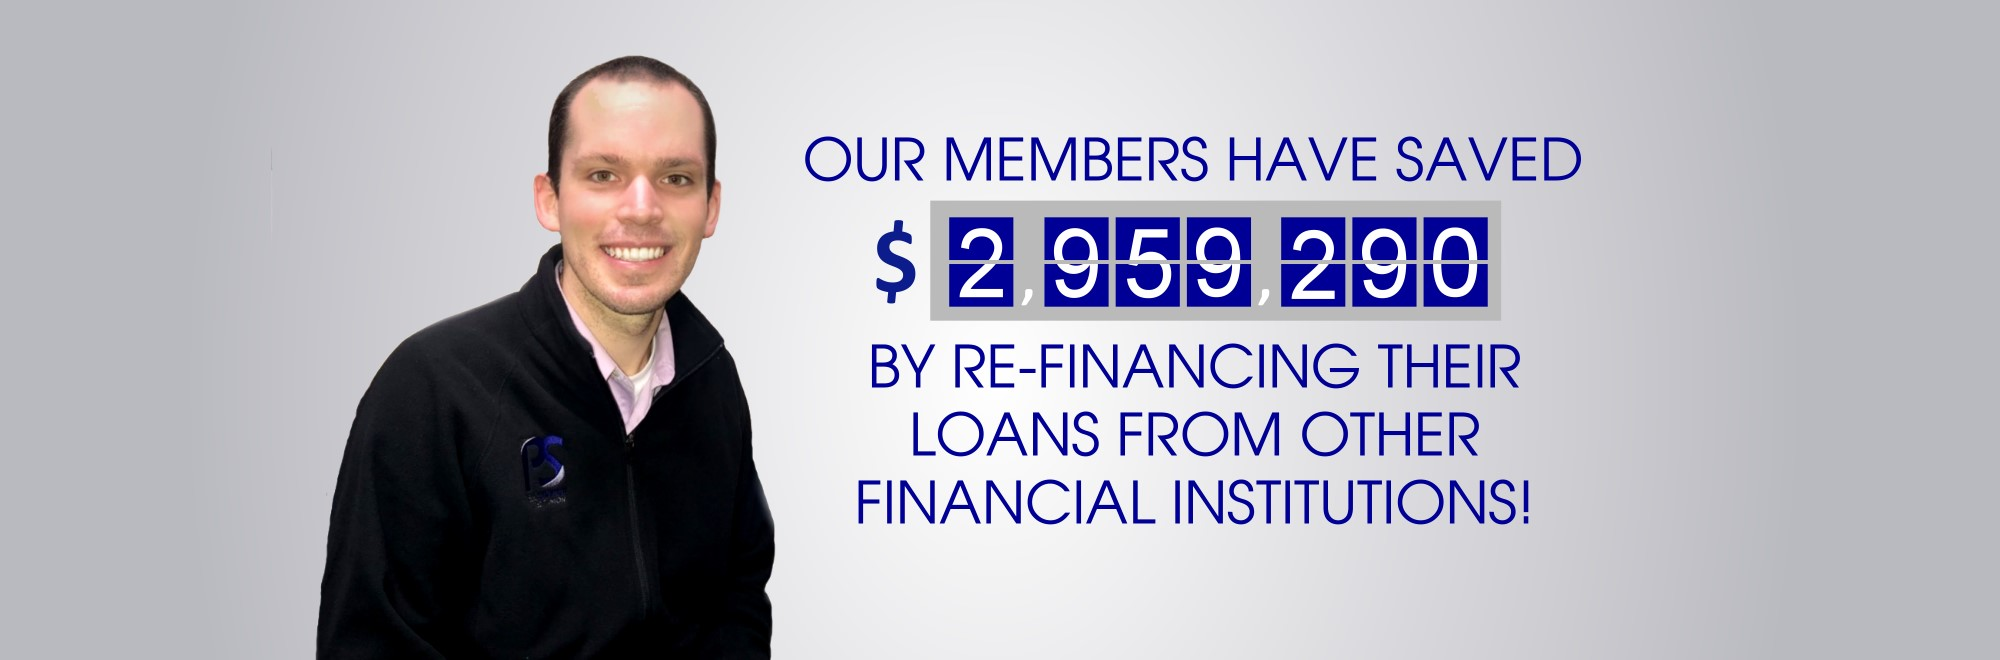 our members have saved $ by refinancing their debt image